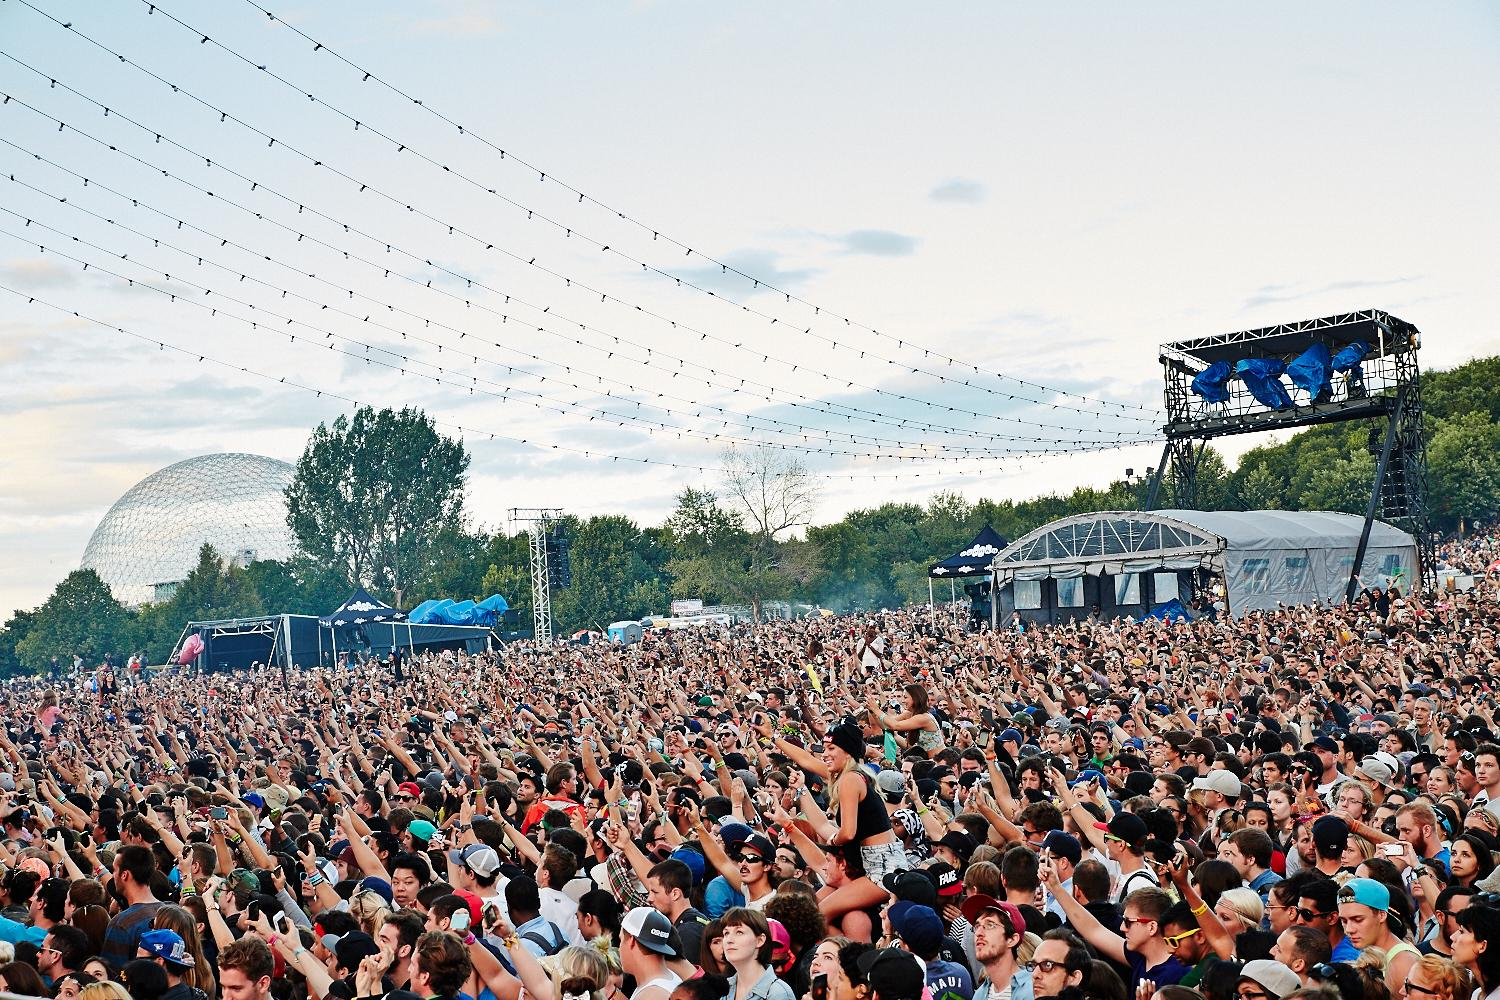 L'horaire complet de chaque spectacle Osheaga disponible NOW!